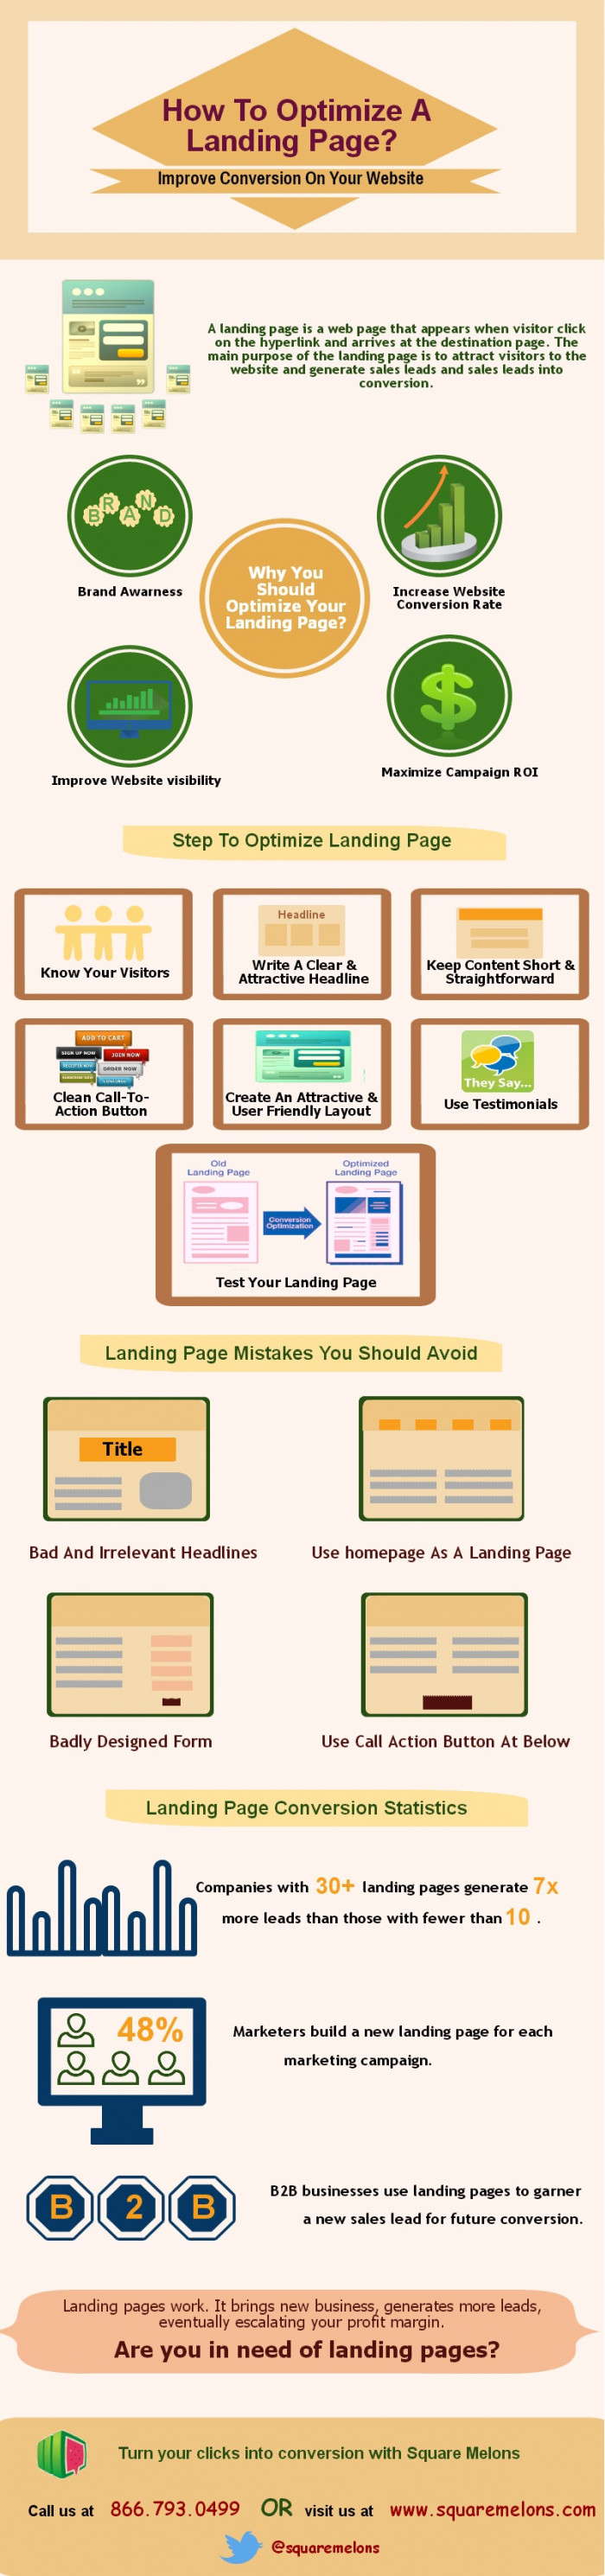 How to Optimize a landing page?